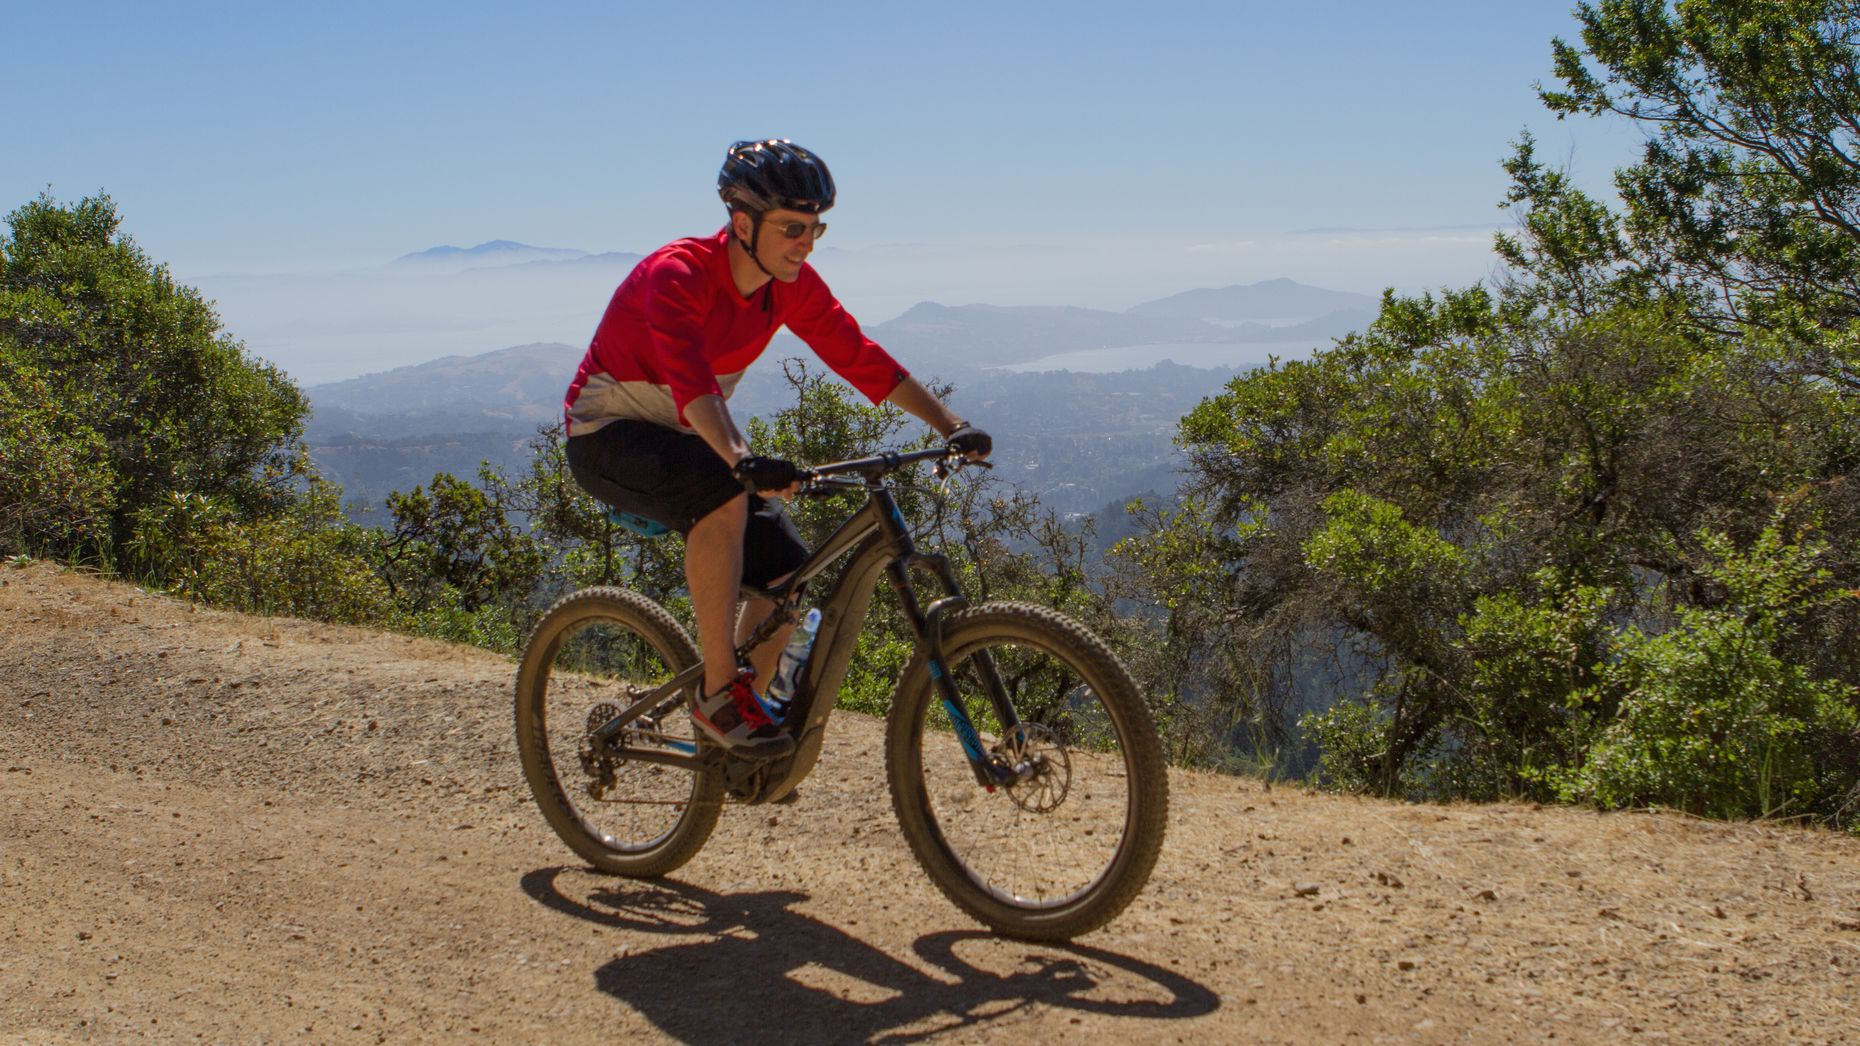 Venture capitalist Dave Morin on his e-mountain bike. Photo by Reed Albergotti.